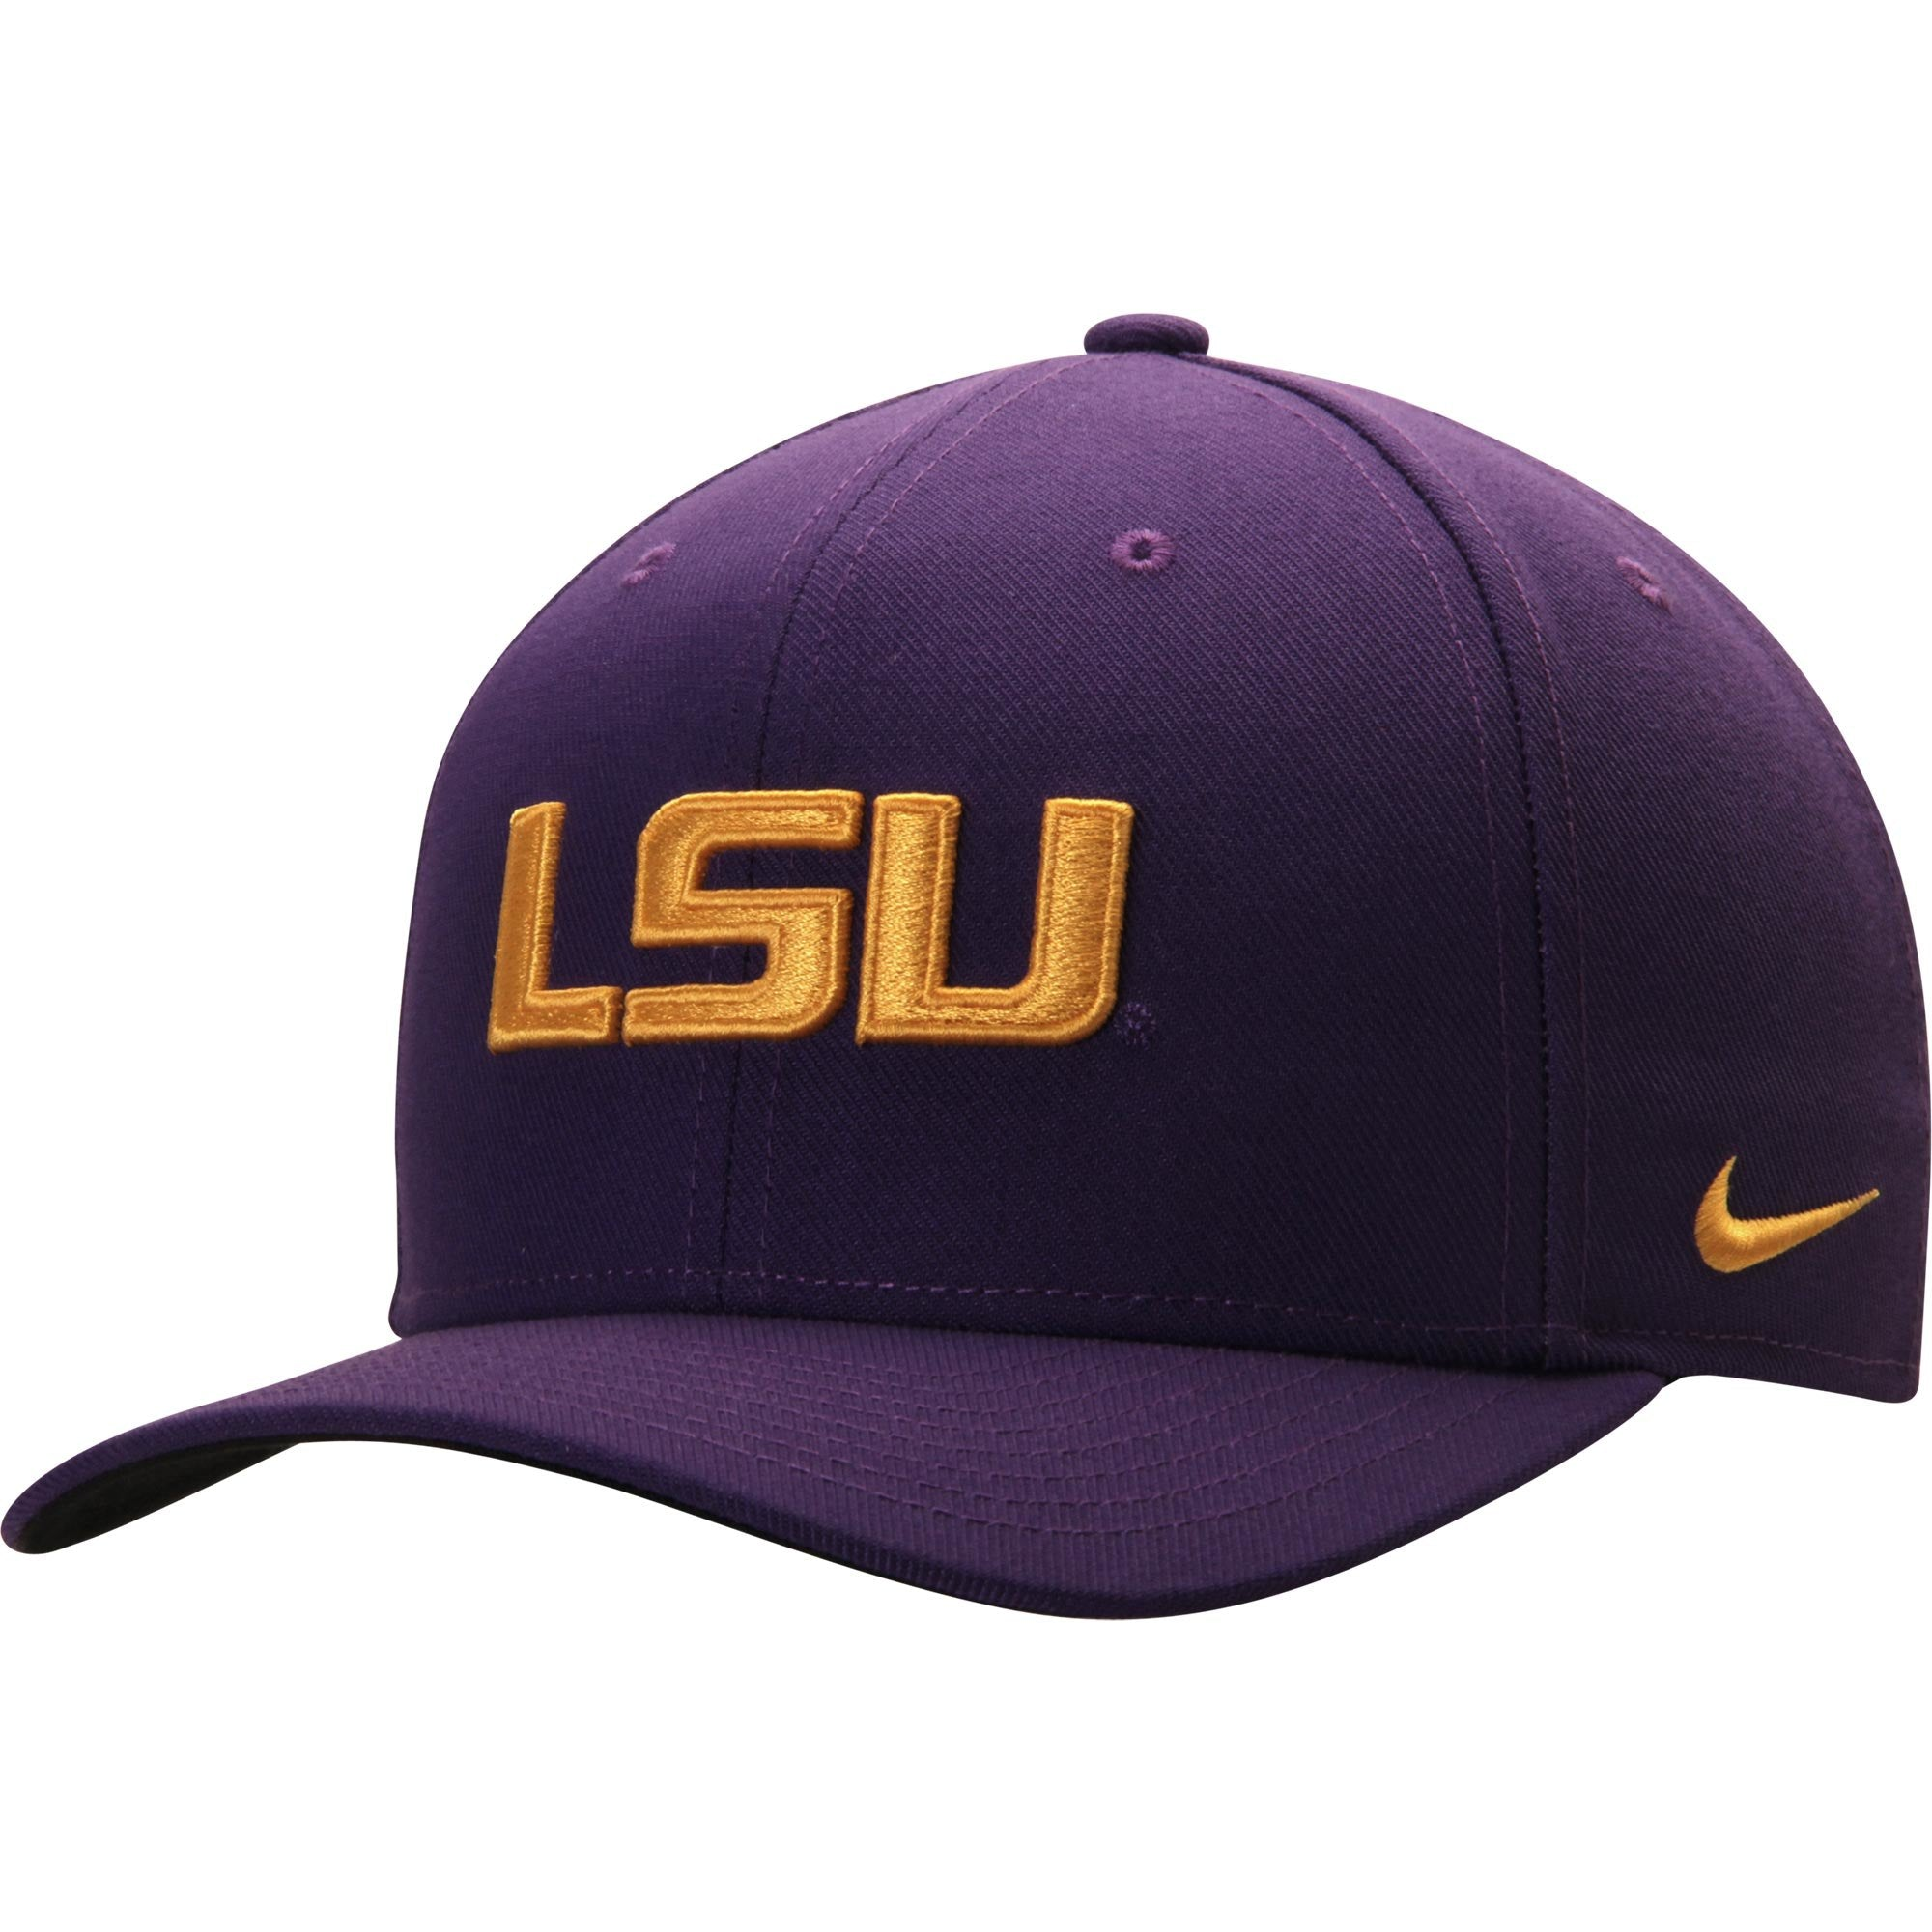 online retailer 31da1 aeee5 ... purchase lsu tigers nike wool classic performance adjustable hat purple  9dce5 6c21d